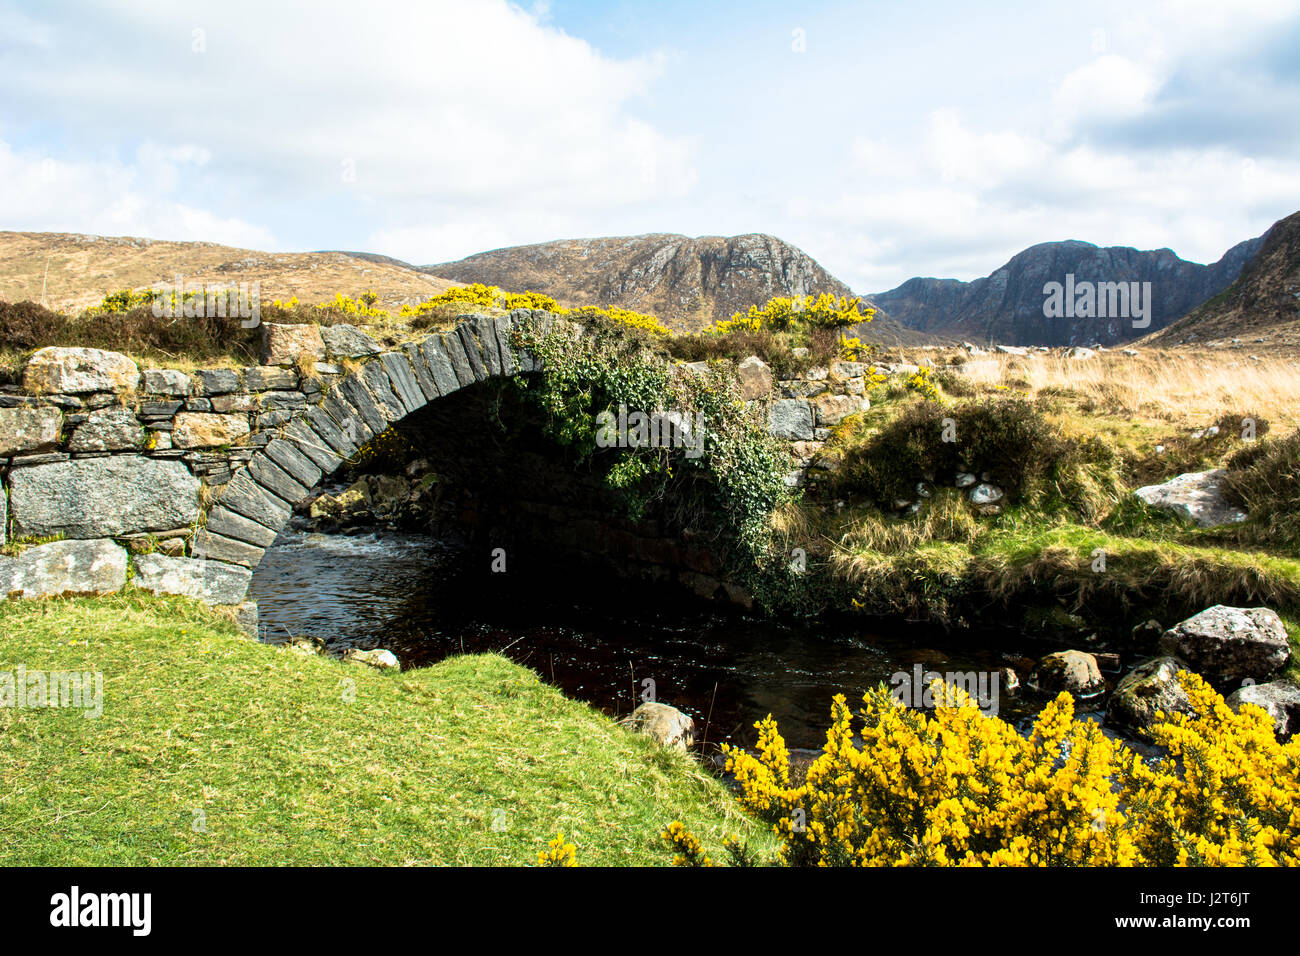 The Stone Bridge The Poisoned Glen Dunlewey Gweedore Donegal Ireland Europe - Stock Image